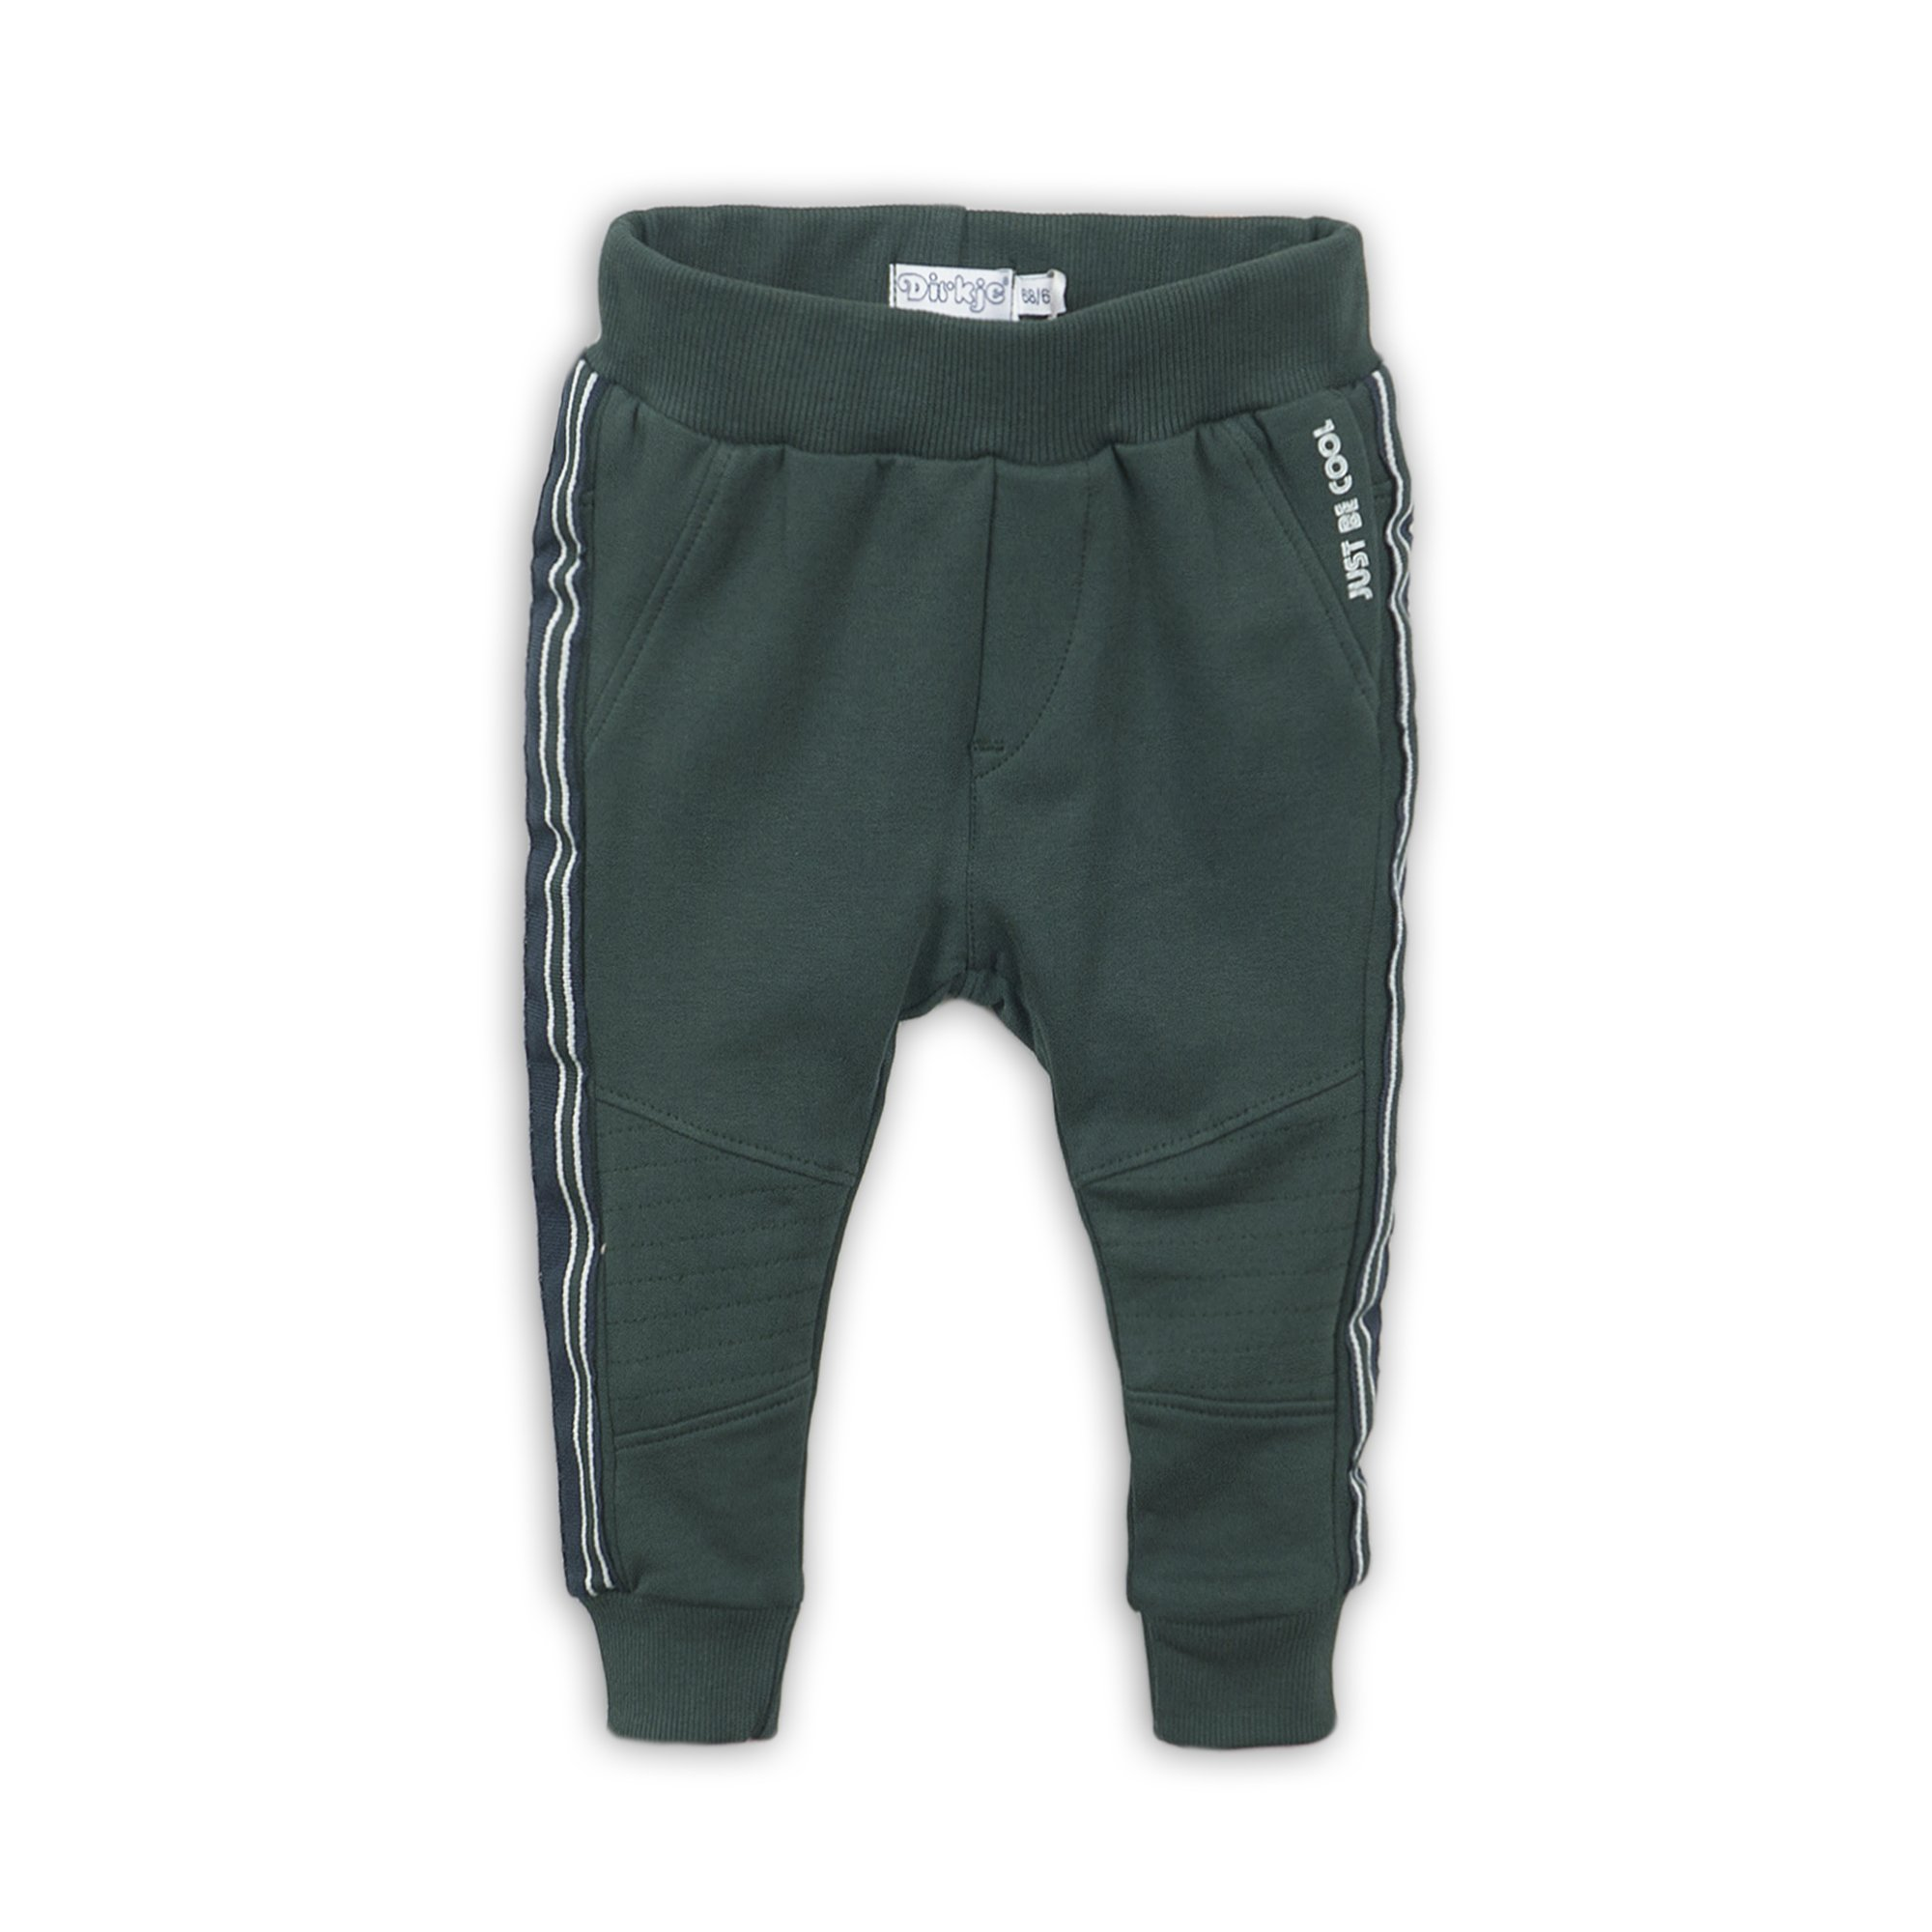 D36673-35 Baby jogging trousers Green